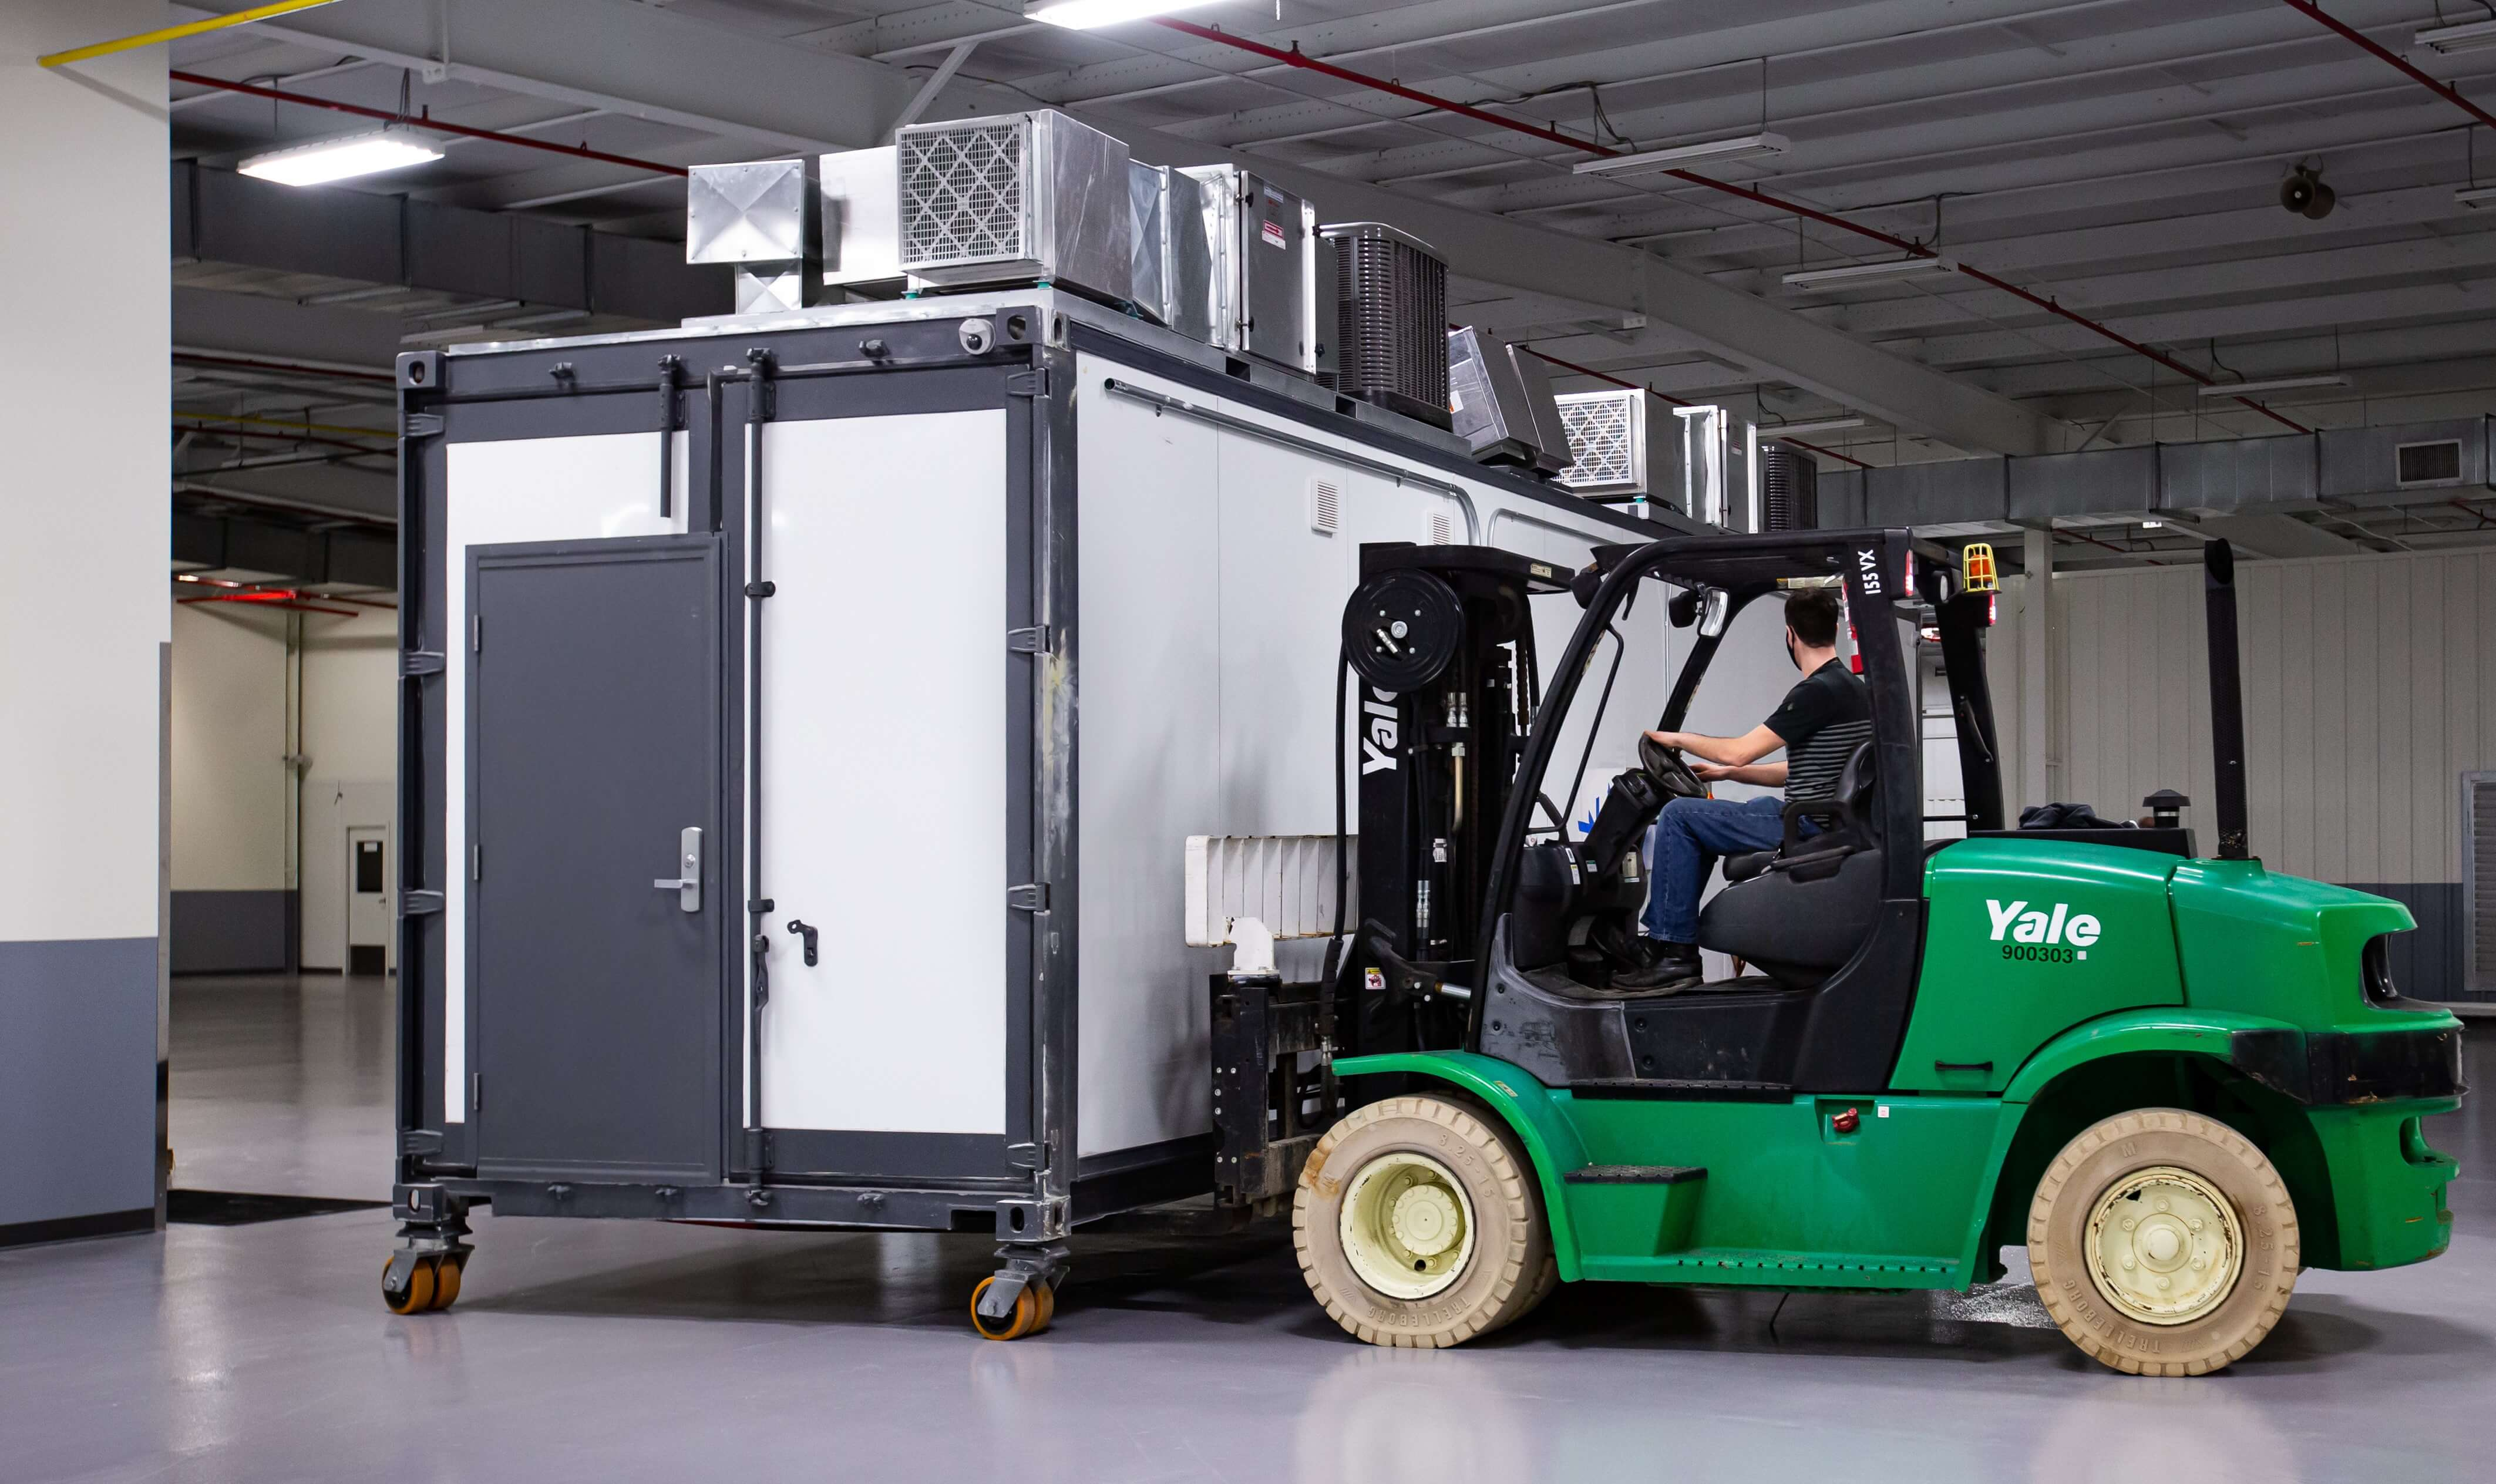 eXi mobile lab moved inside a facility